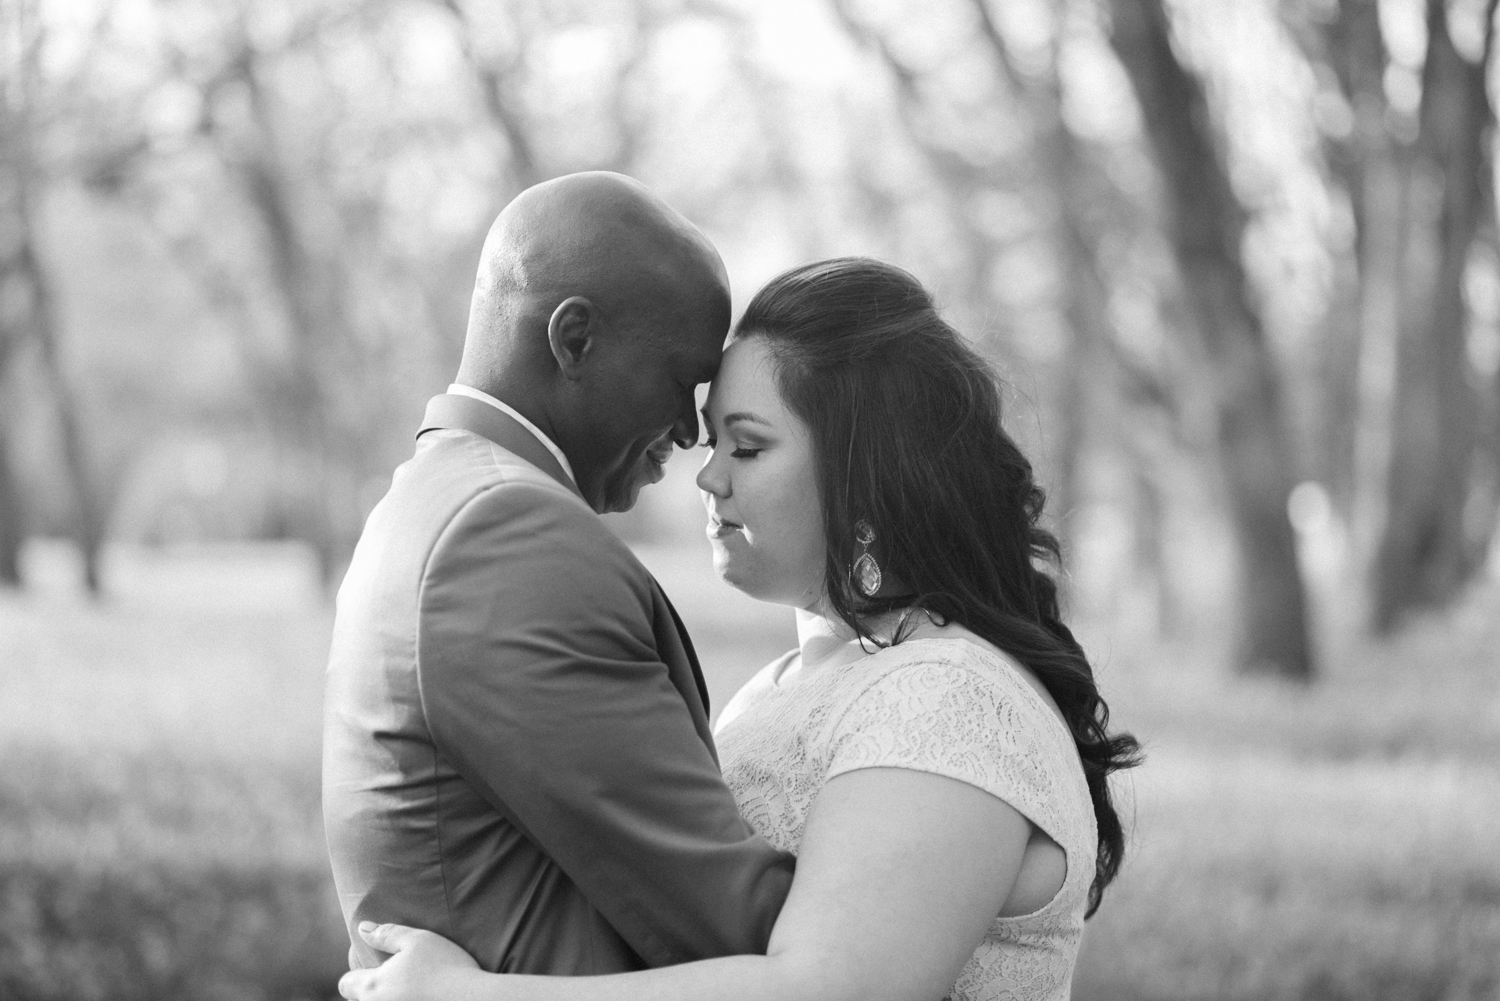 romantic-salem-engagement-photos-bush-park-shelley-marie-photo-8